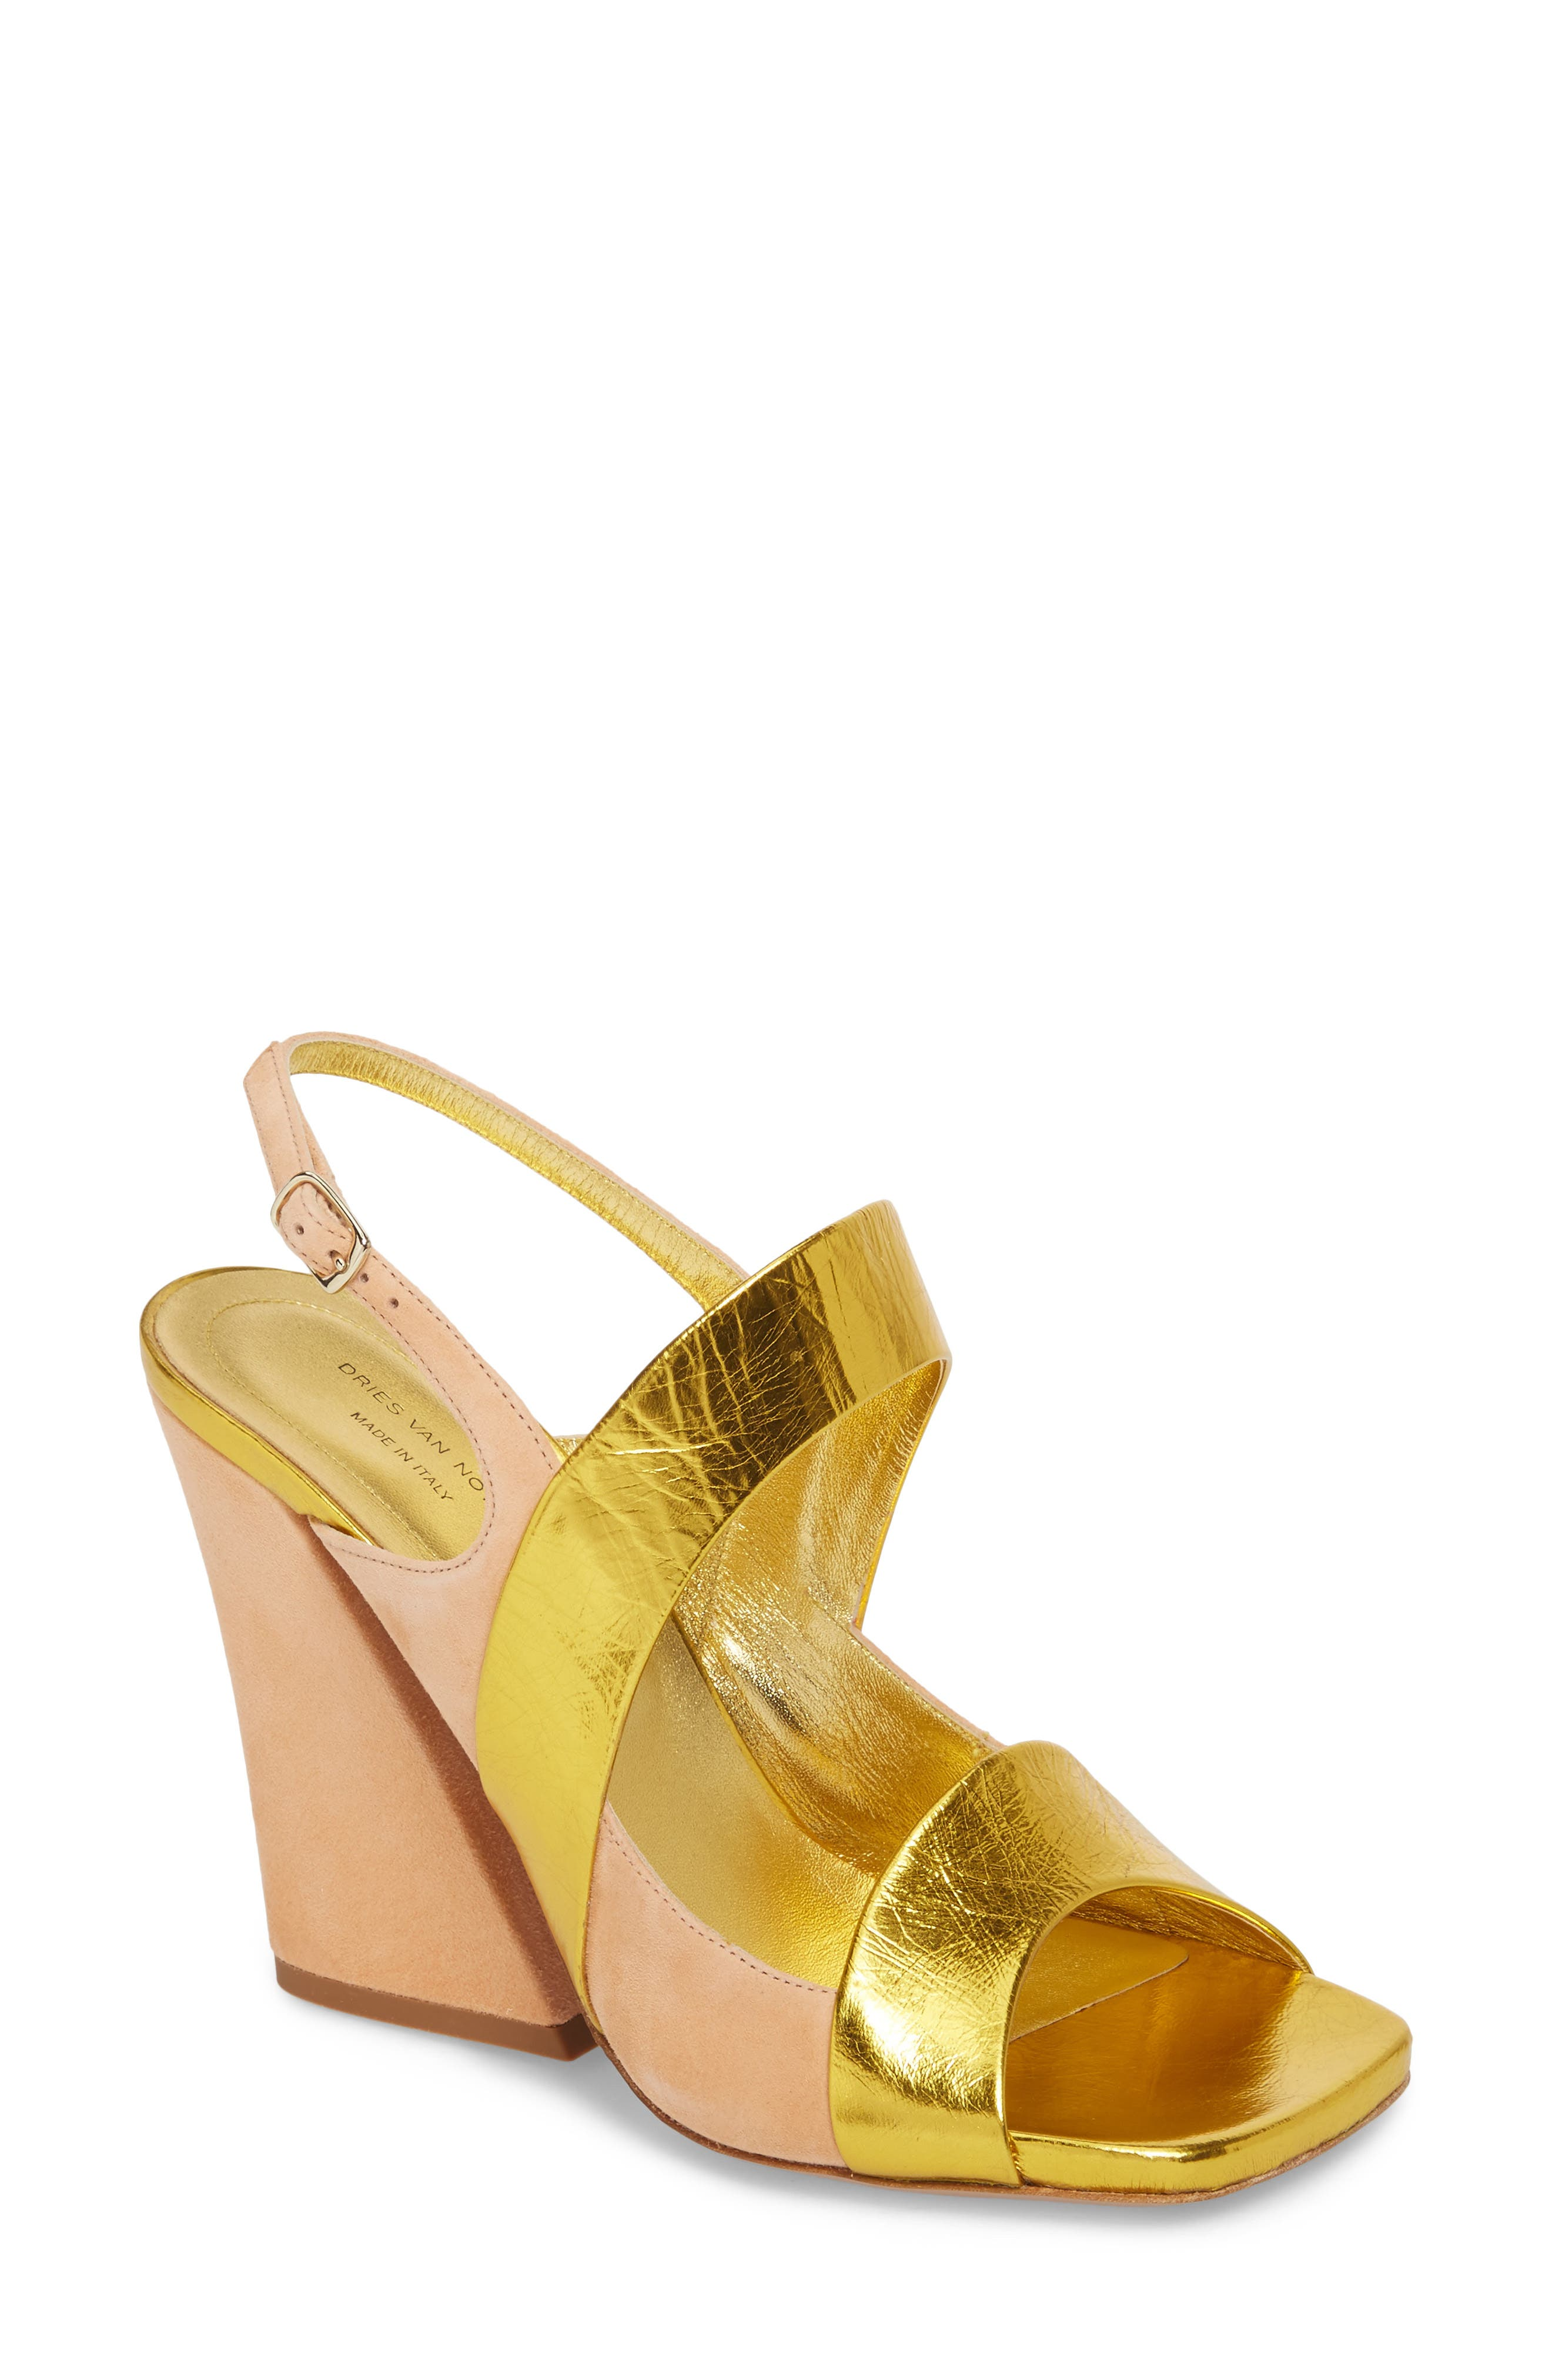 Block Heel Sandal,                             Main thumbnail 1, color,                             Gold